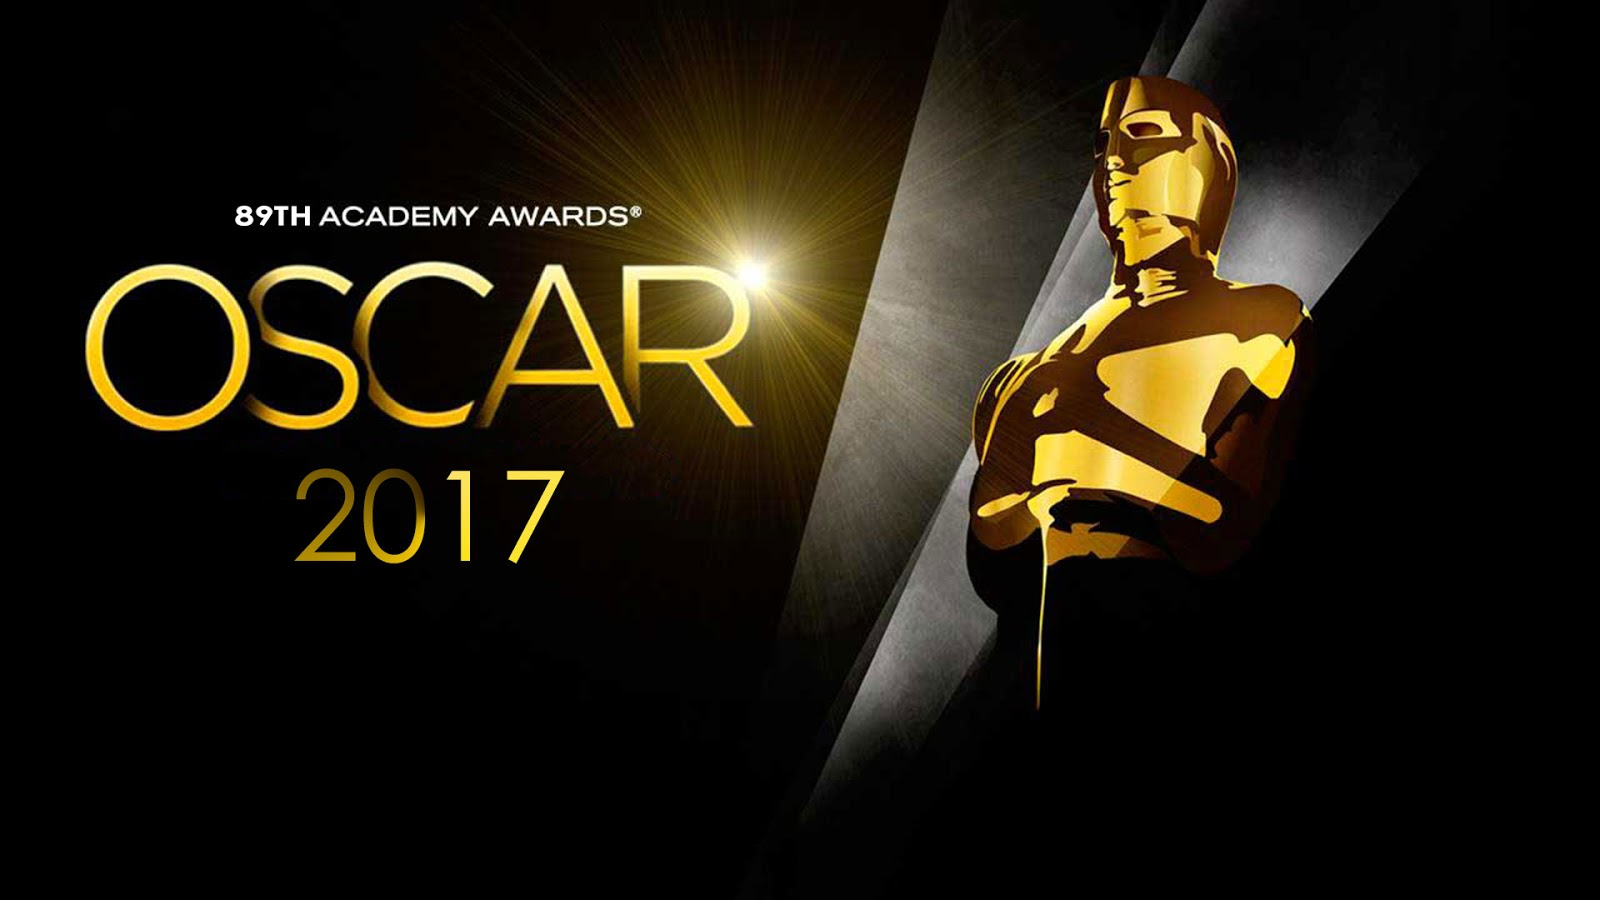 Oscars 2017: List Of Winners Of The 89th Academy Awards